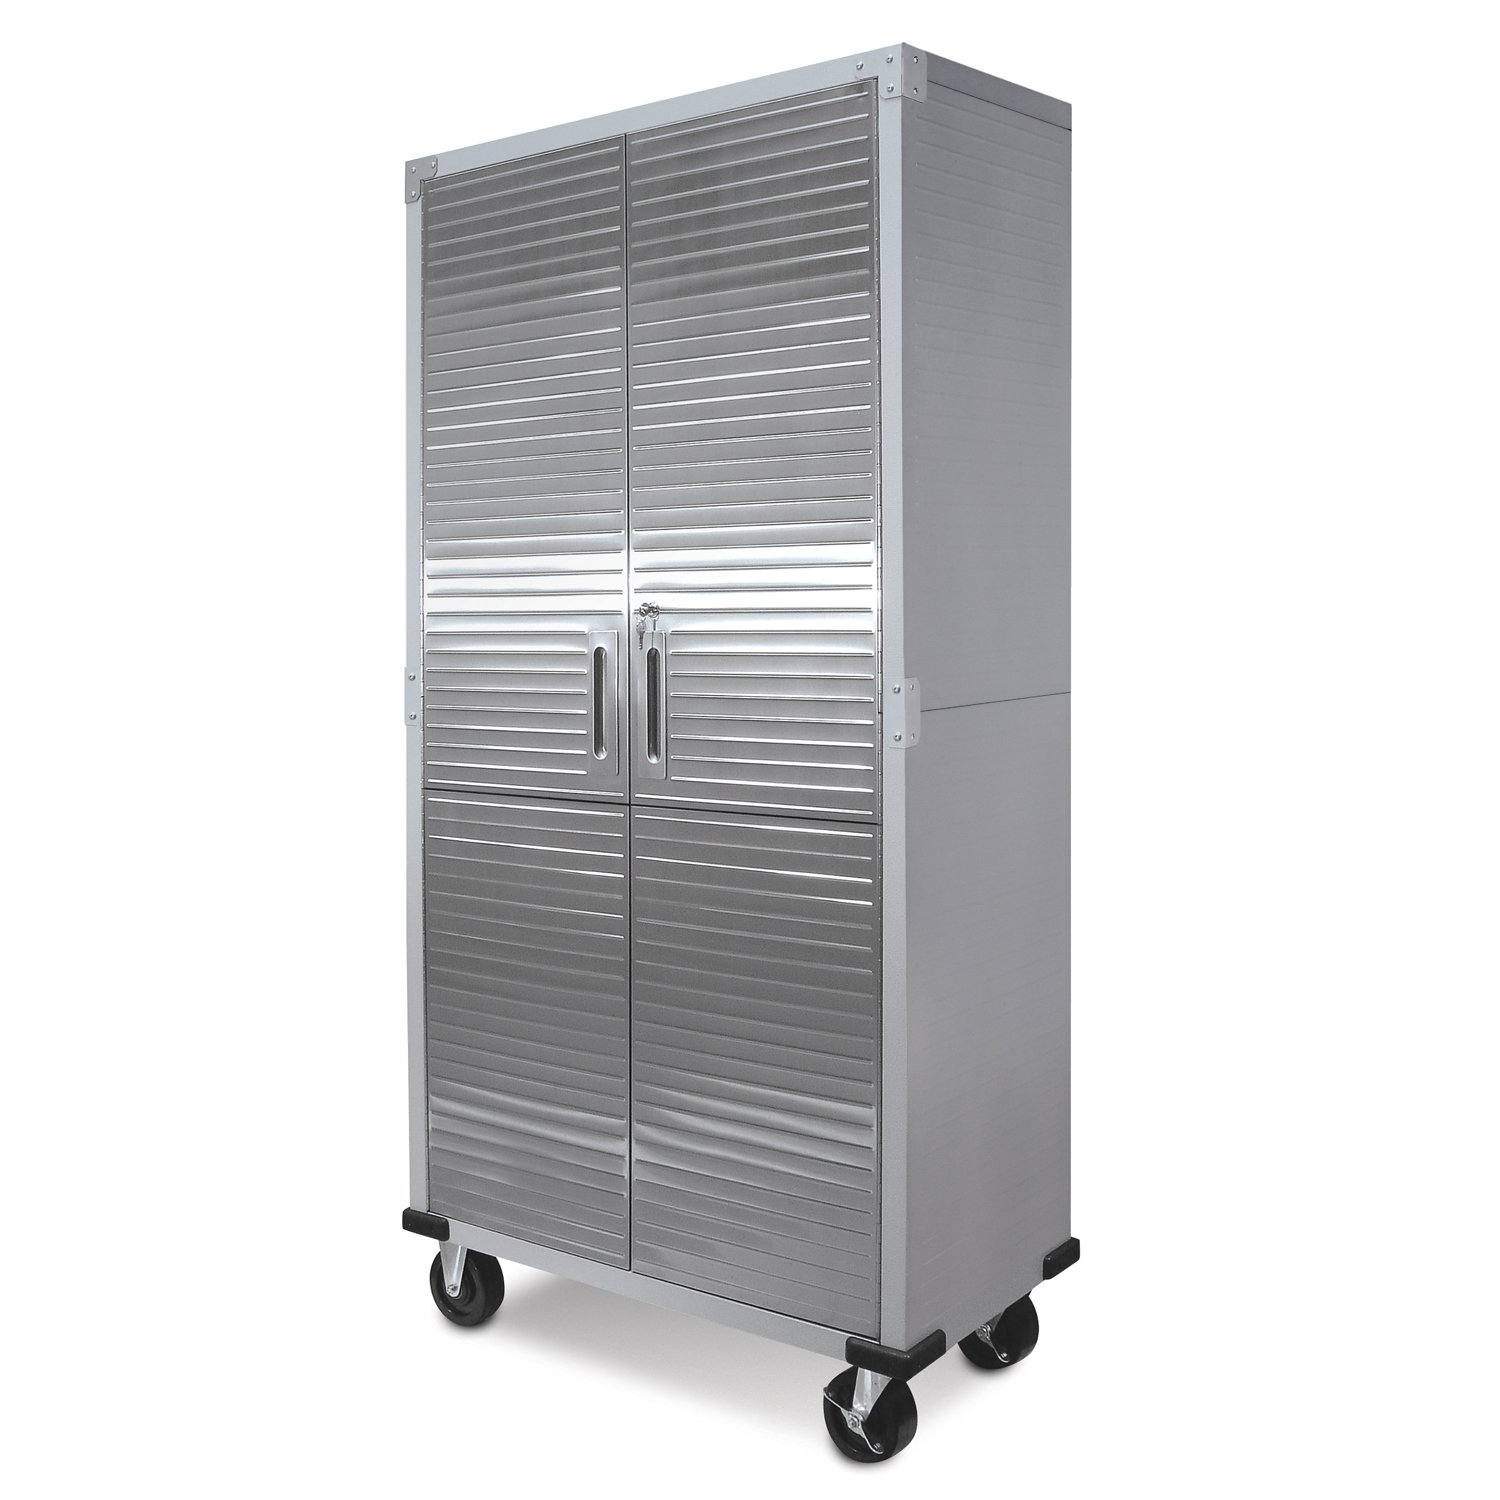 7. UltraHD Tall Storage Cabinet - UHD16236B Stainless Steel